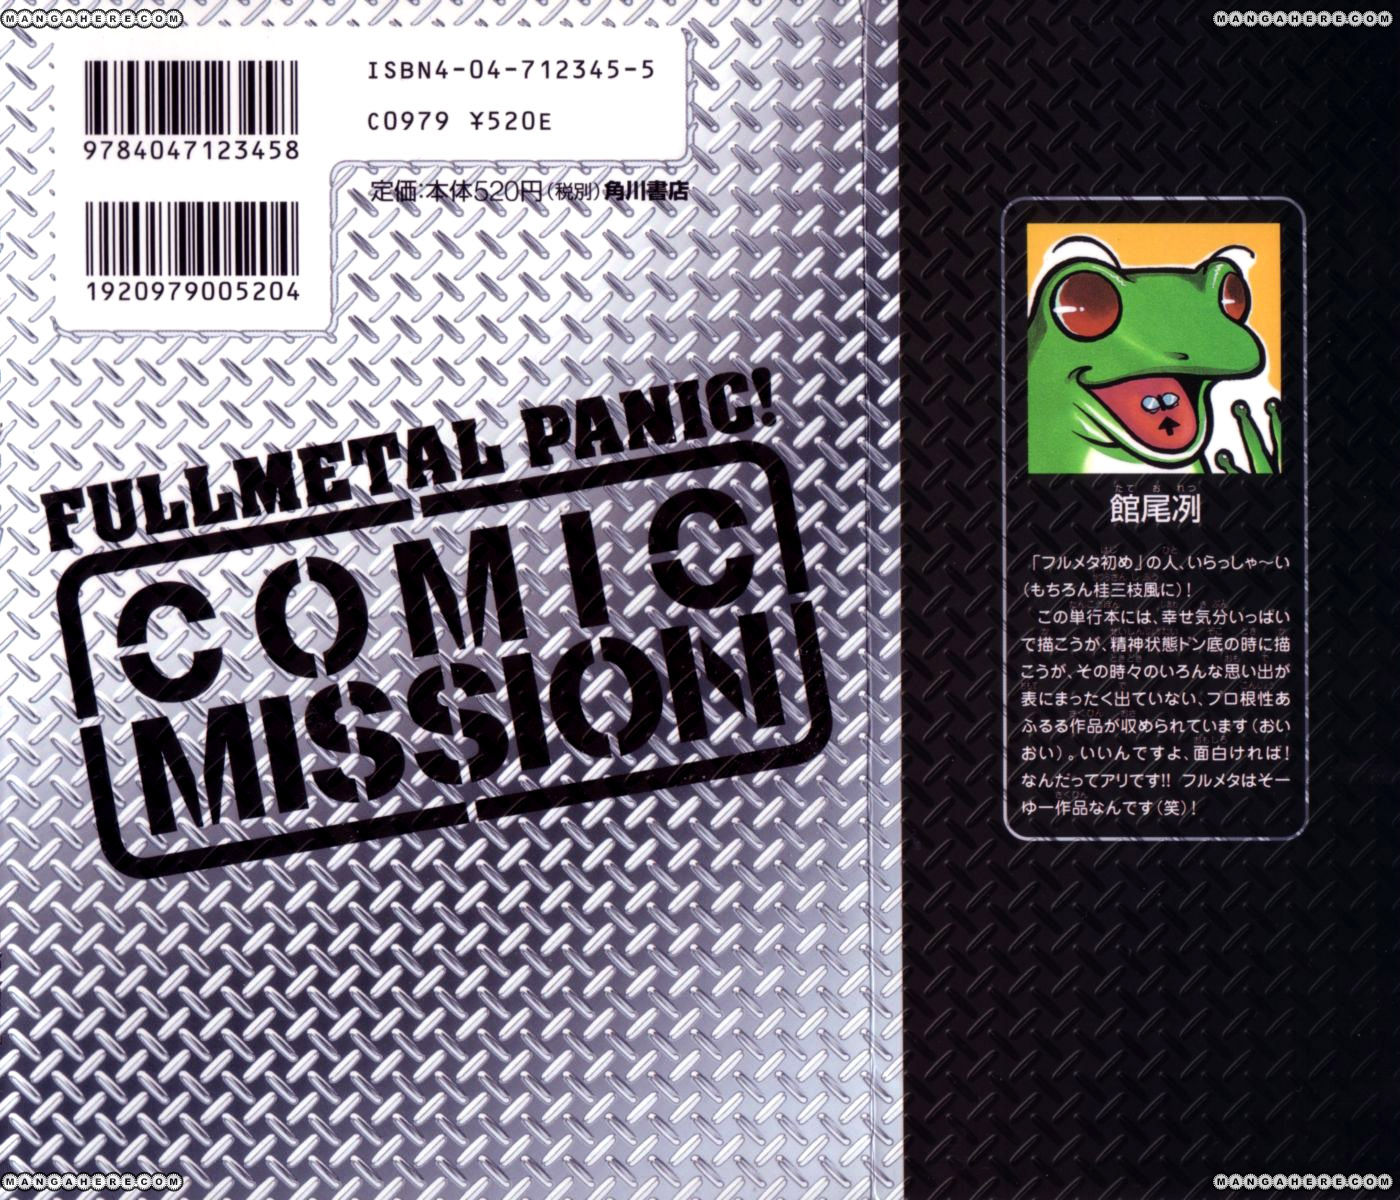 Full Metal Panic Comic Mission 5.5 Page 2